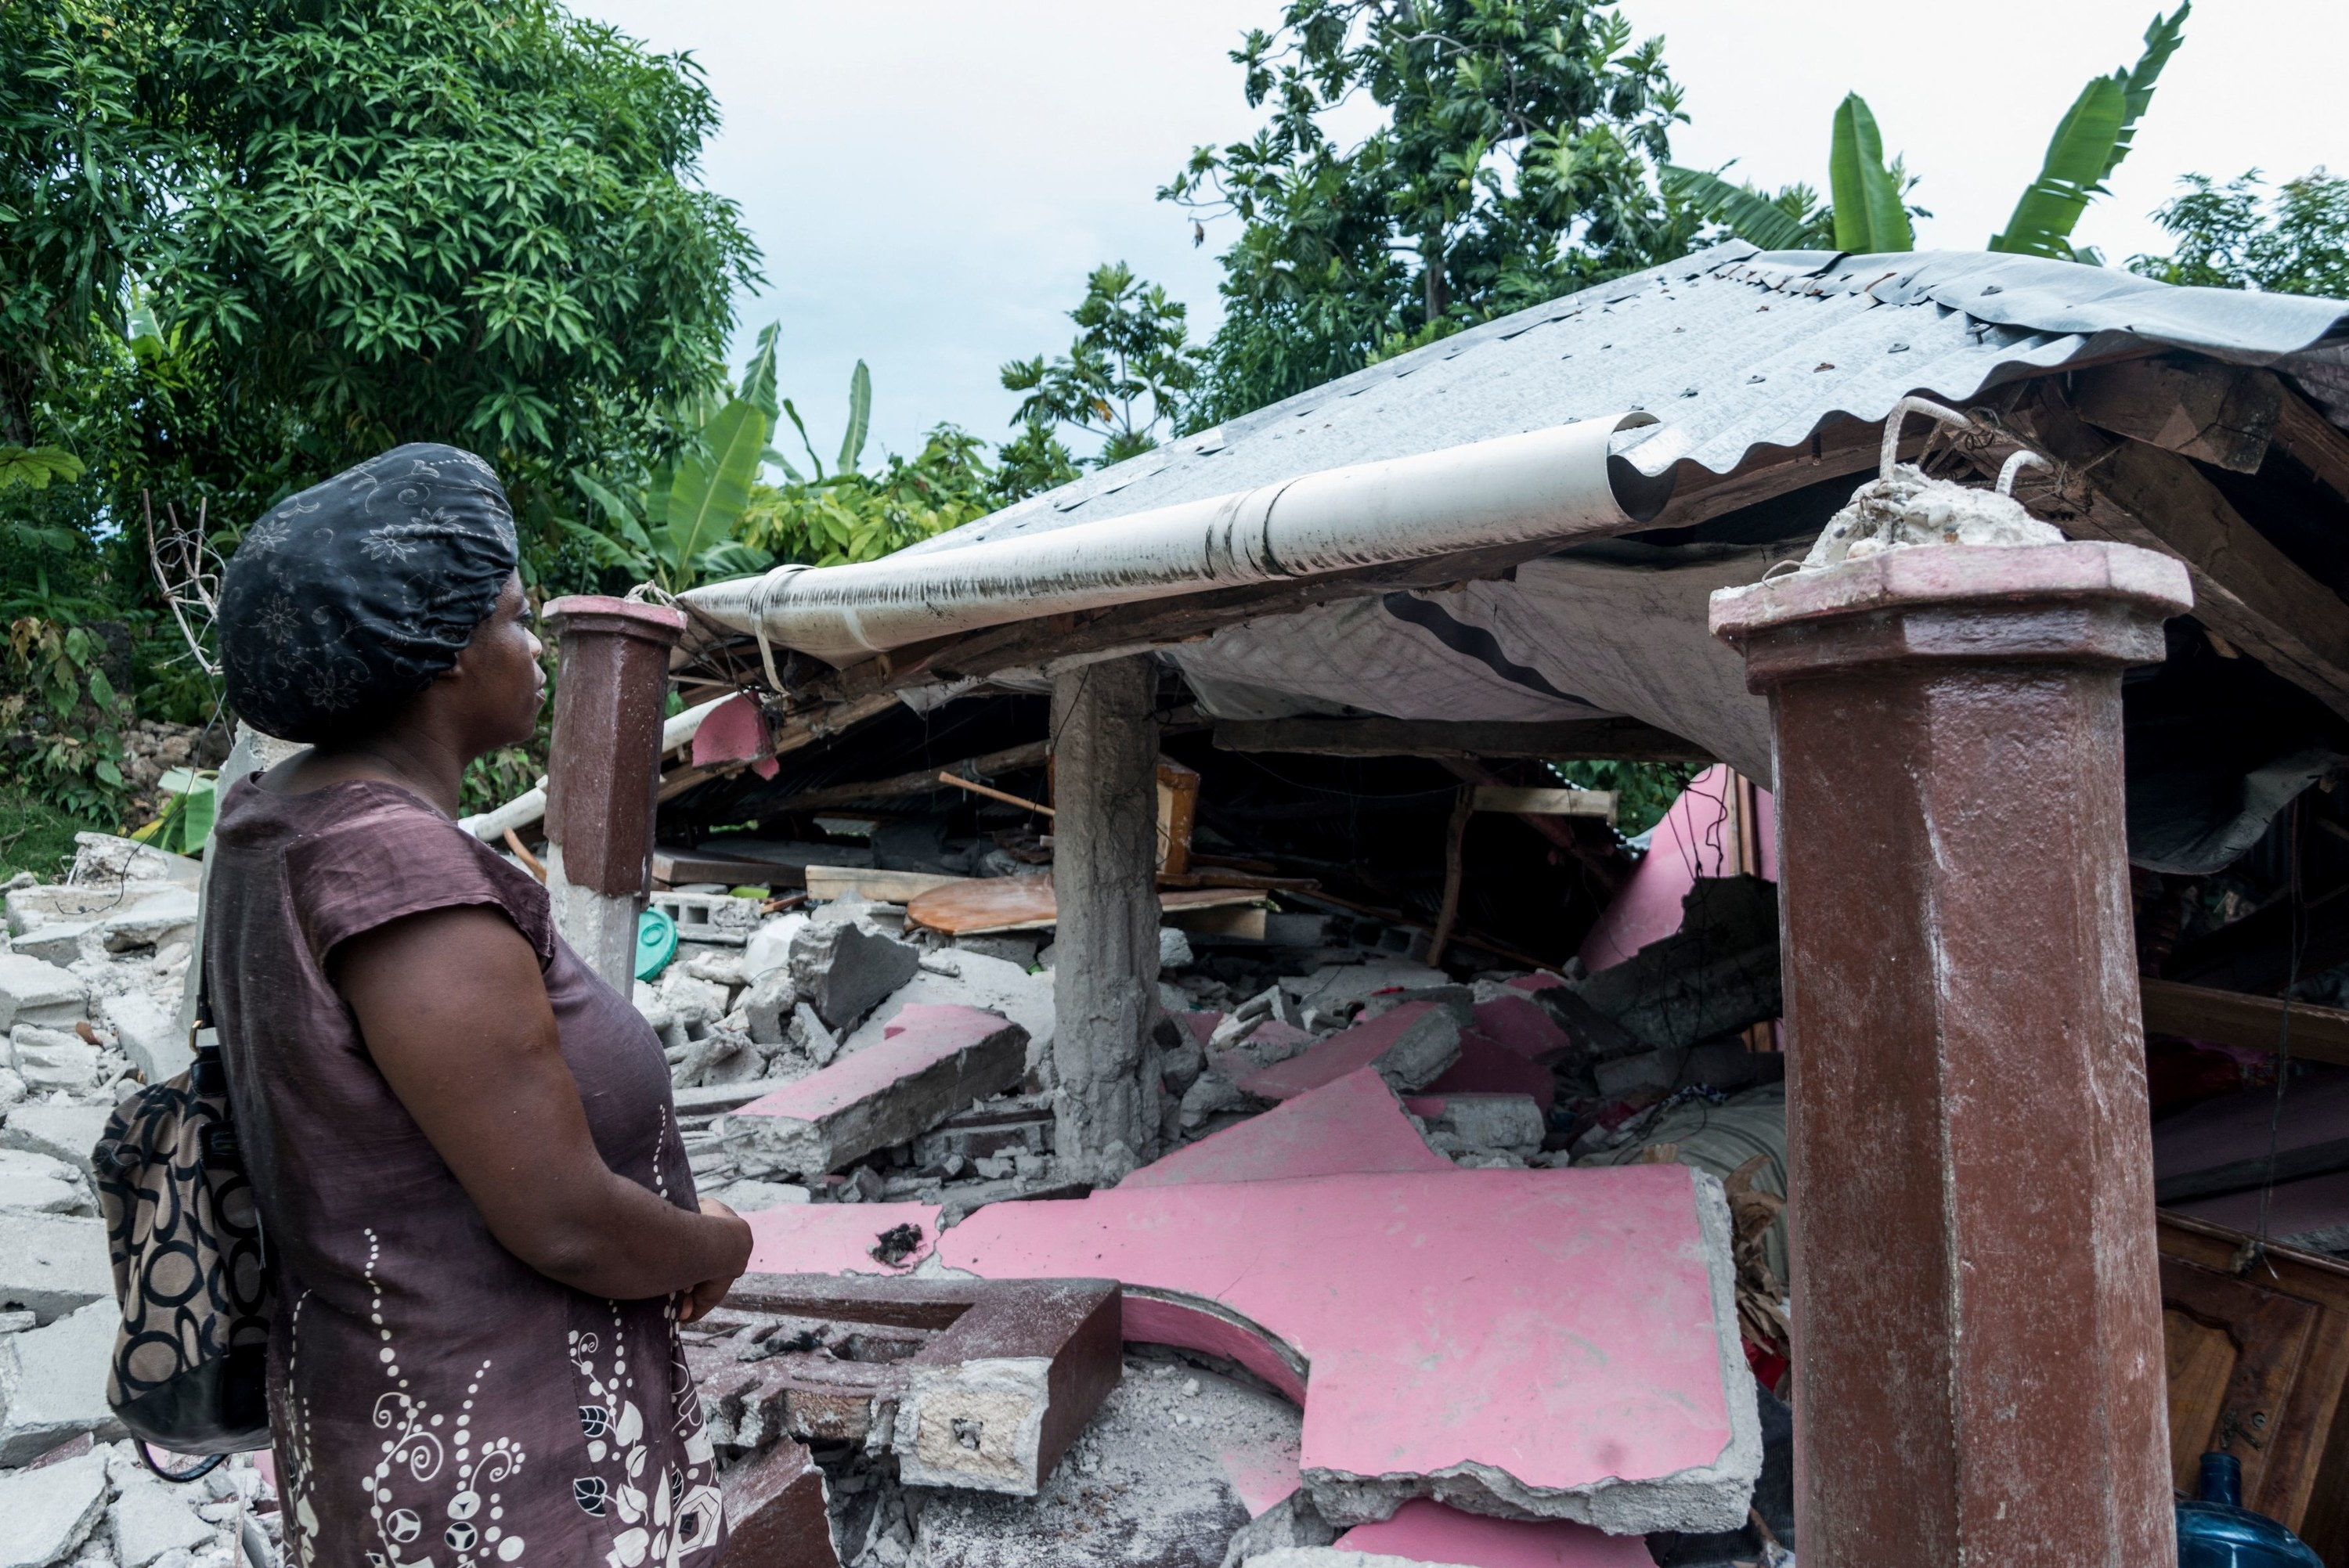 A Haitian woman faces concrete rubble and a collapsed roof